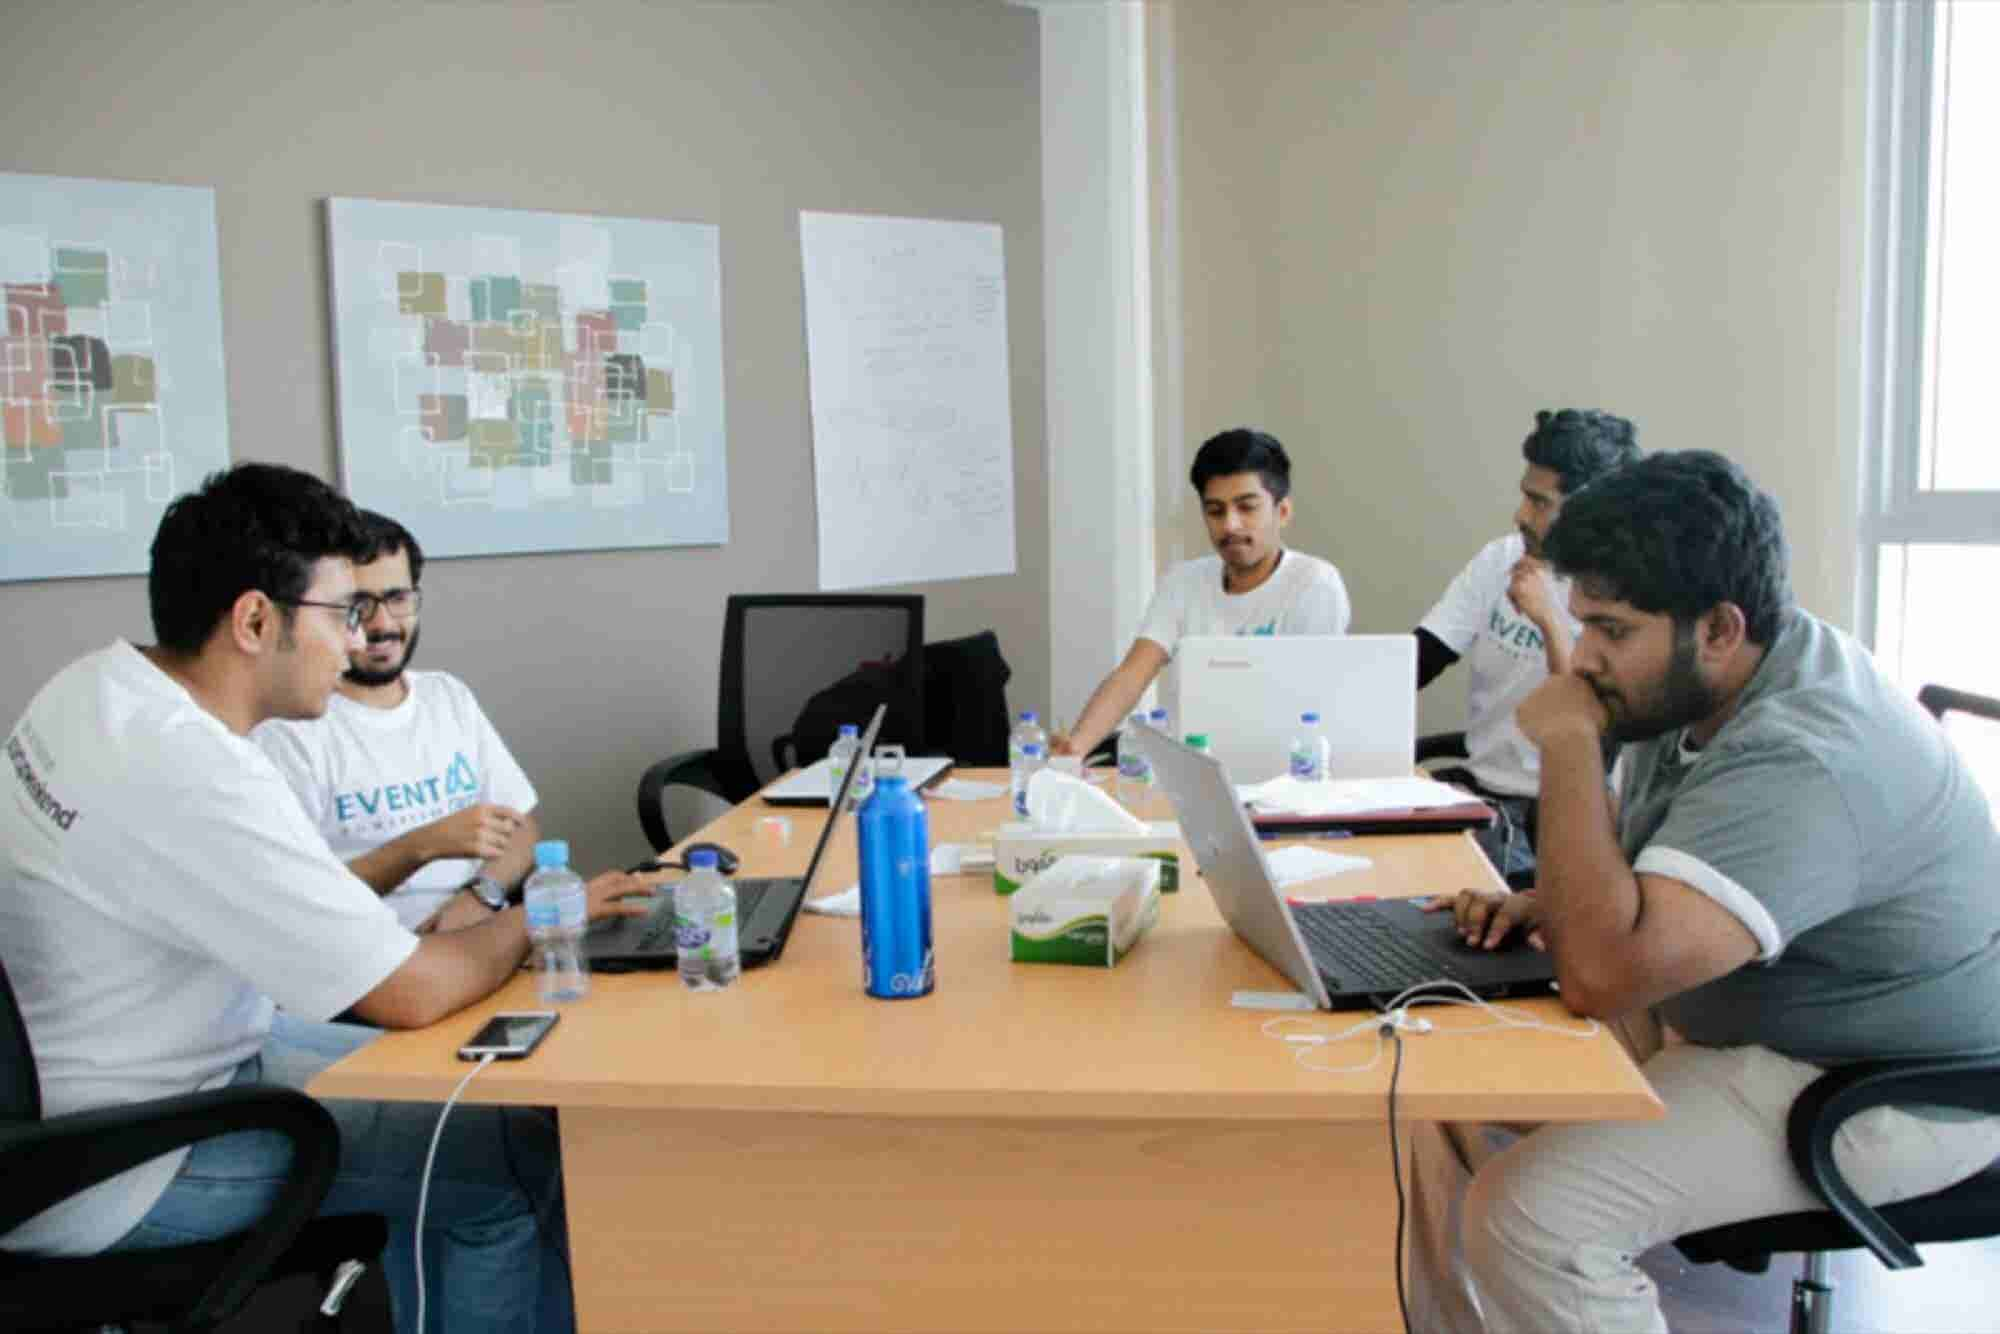 RAK Incubator And Accelerator Launches At The Startup Weekend Ras Al Khaimah 2017